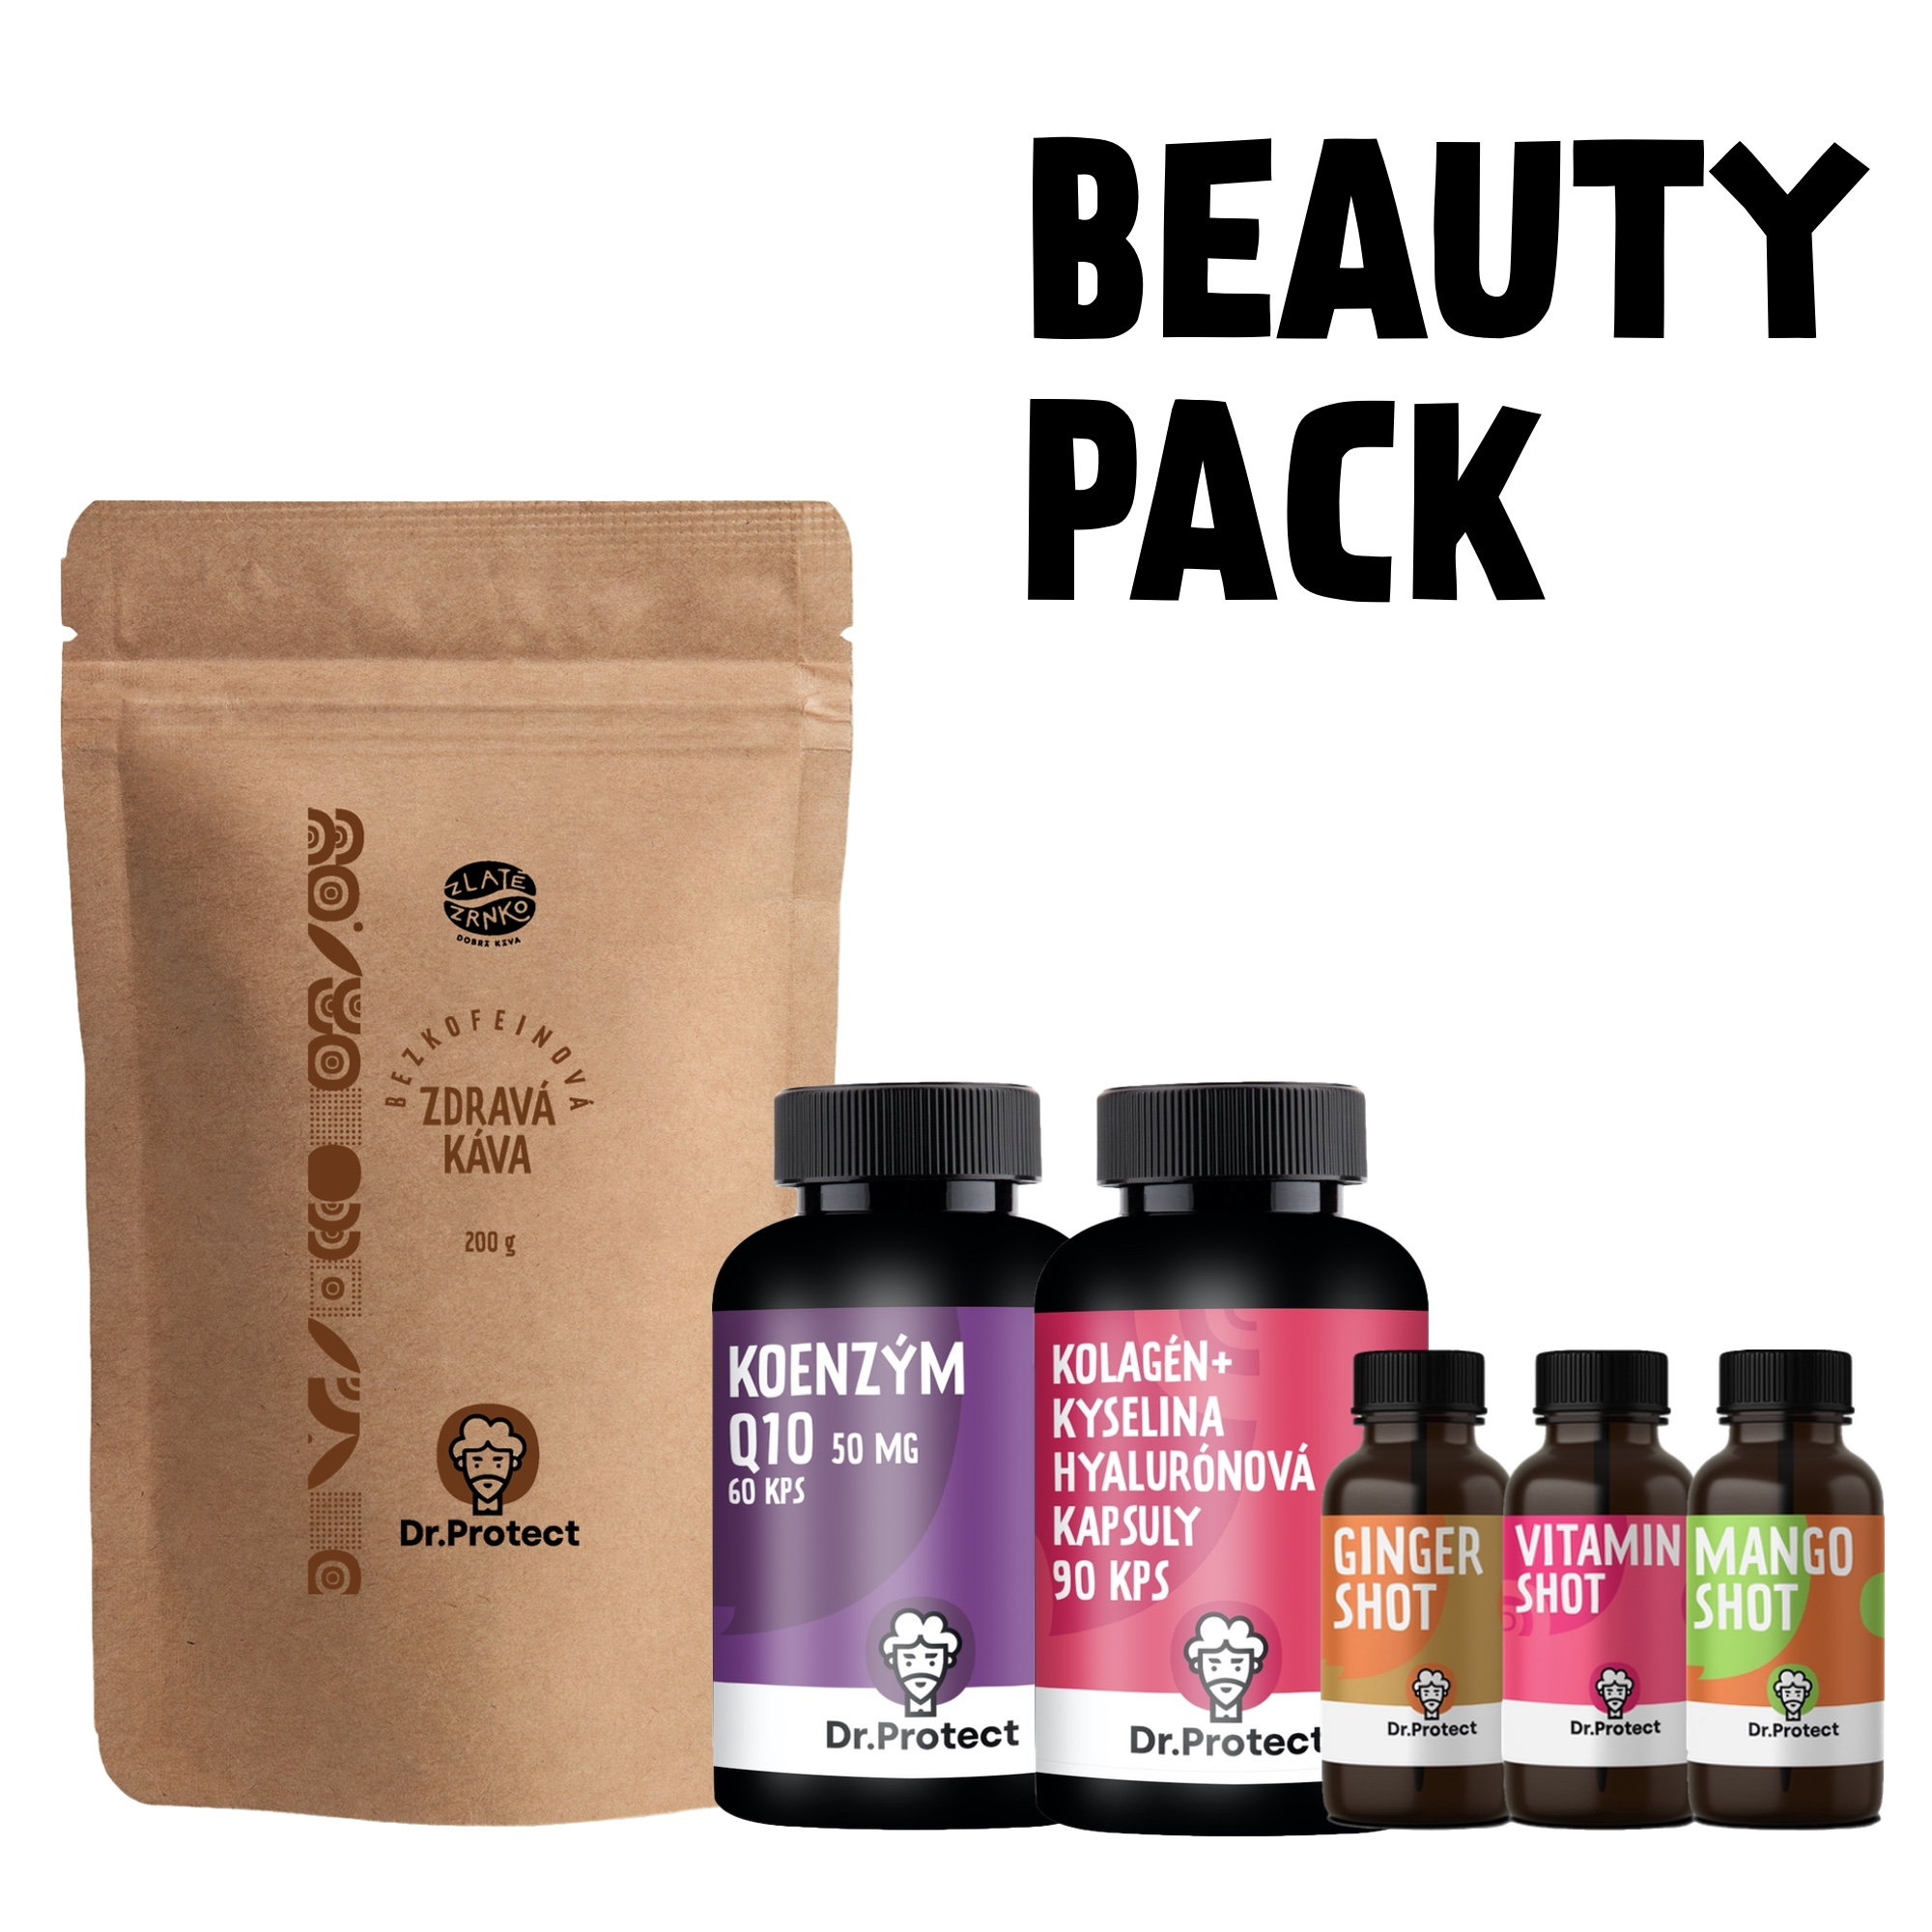 Dr.Protect Beauty Pack